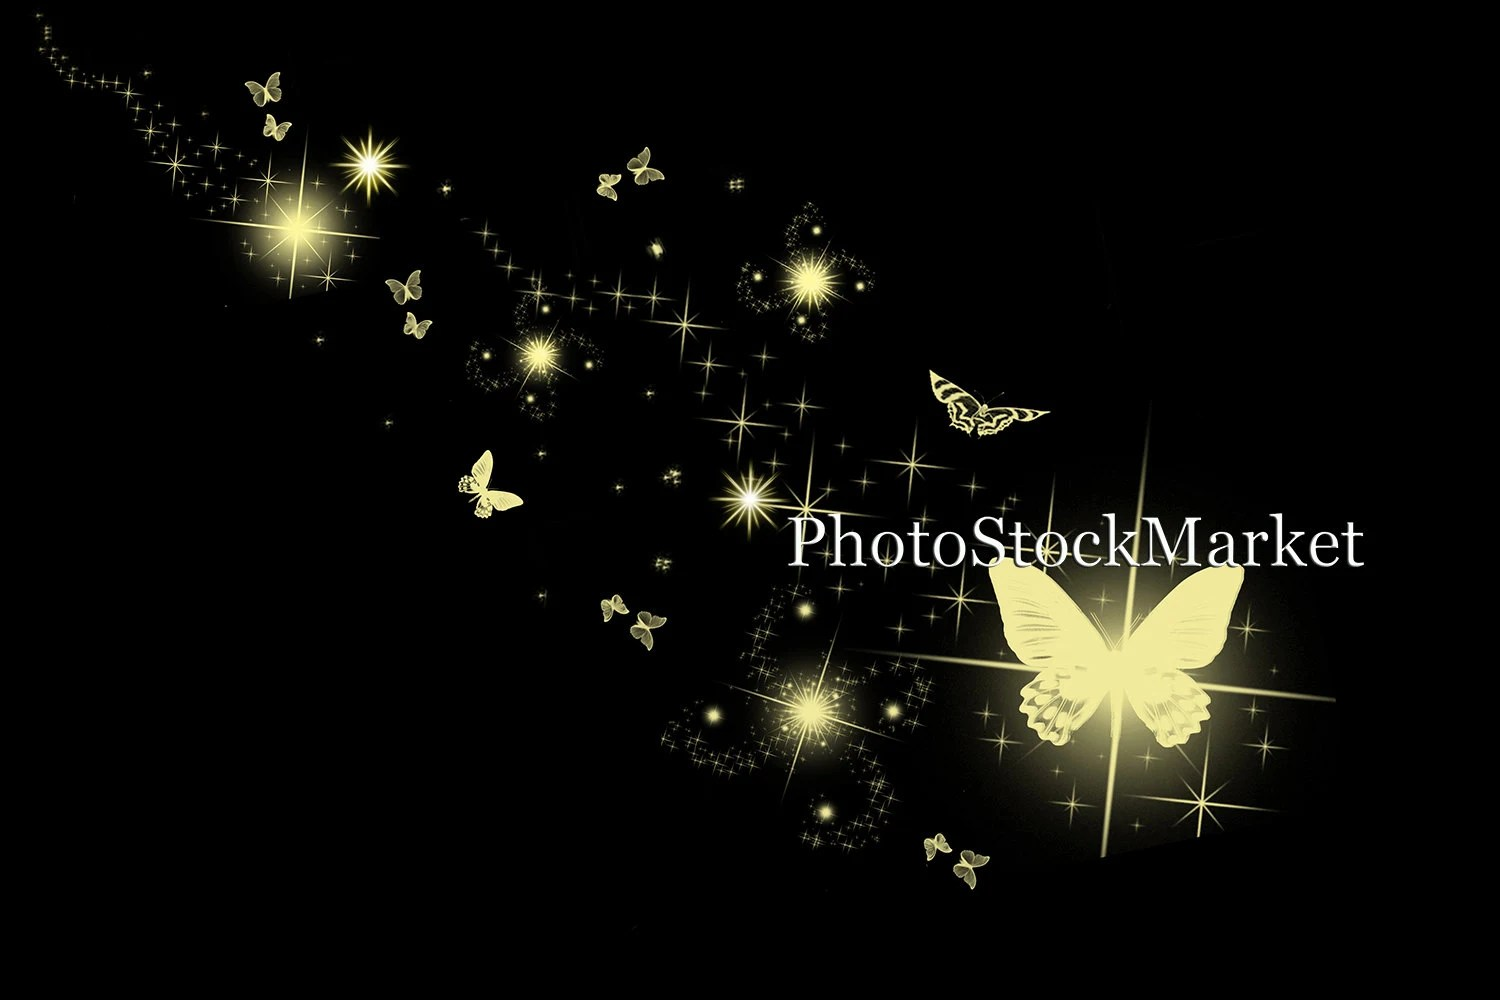 Falling Snow Wallpaper Software Butterfly Sparkles Overlay Photoshop Overlay Magic Dust